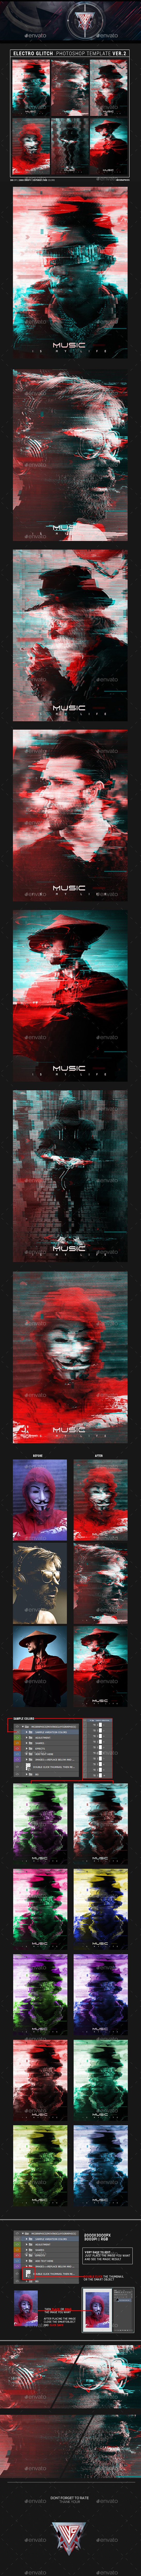 Electro Glitch Photoshop Template Ver. 2 - Artistic Photo Templates